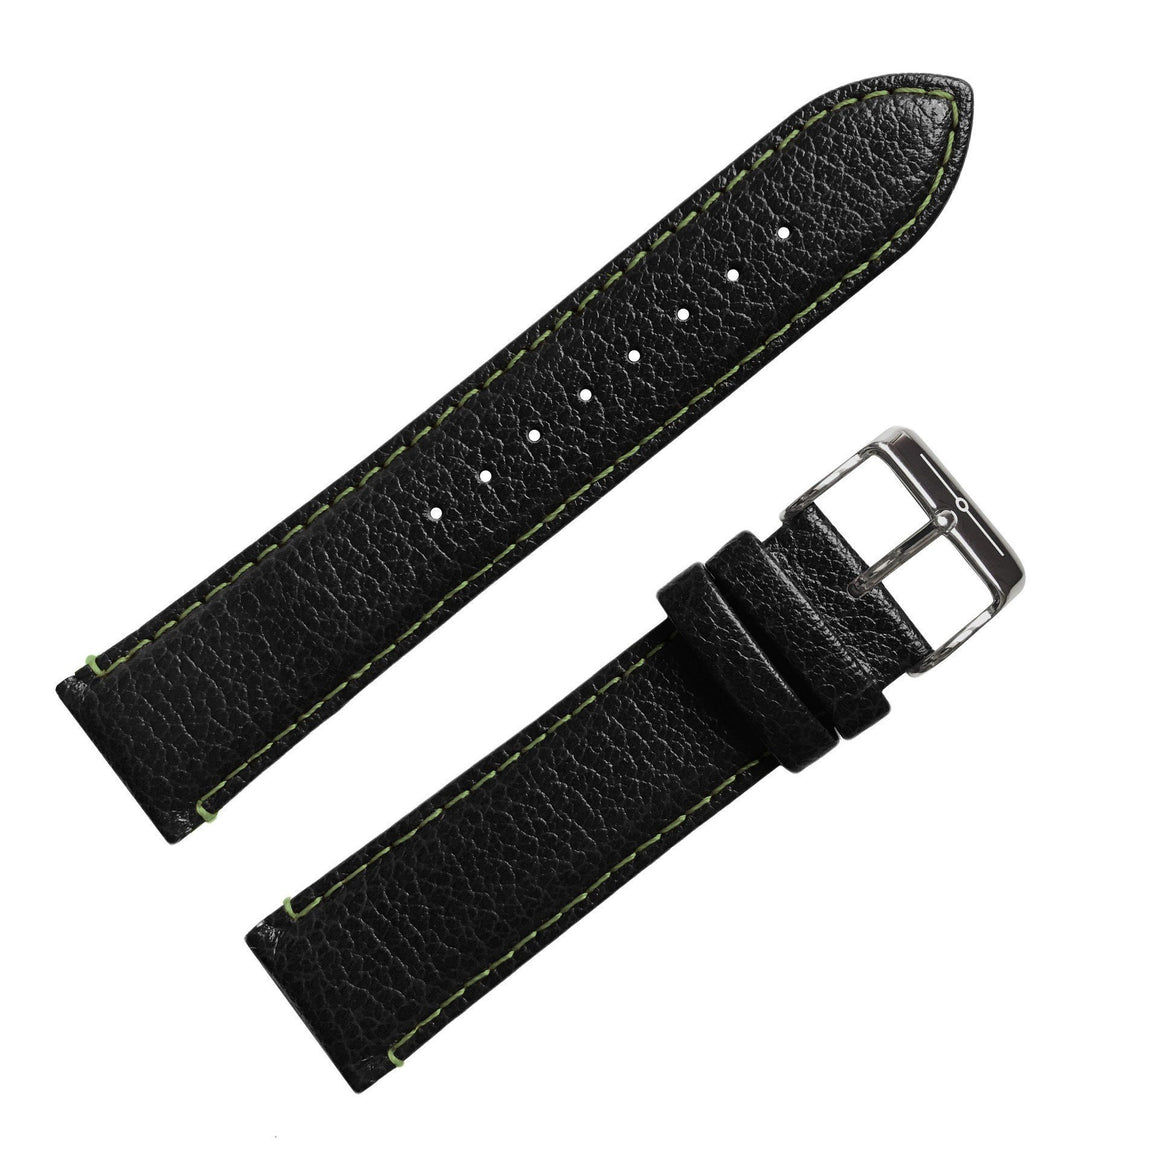 Strap - No.29 Black And Green Strap